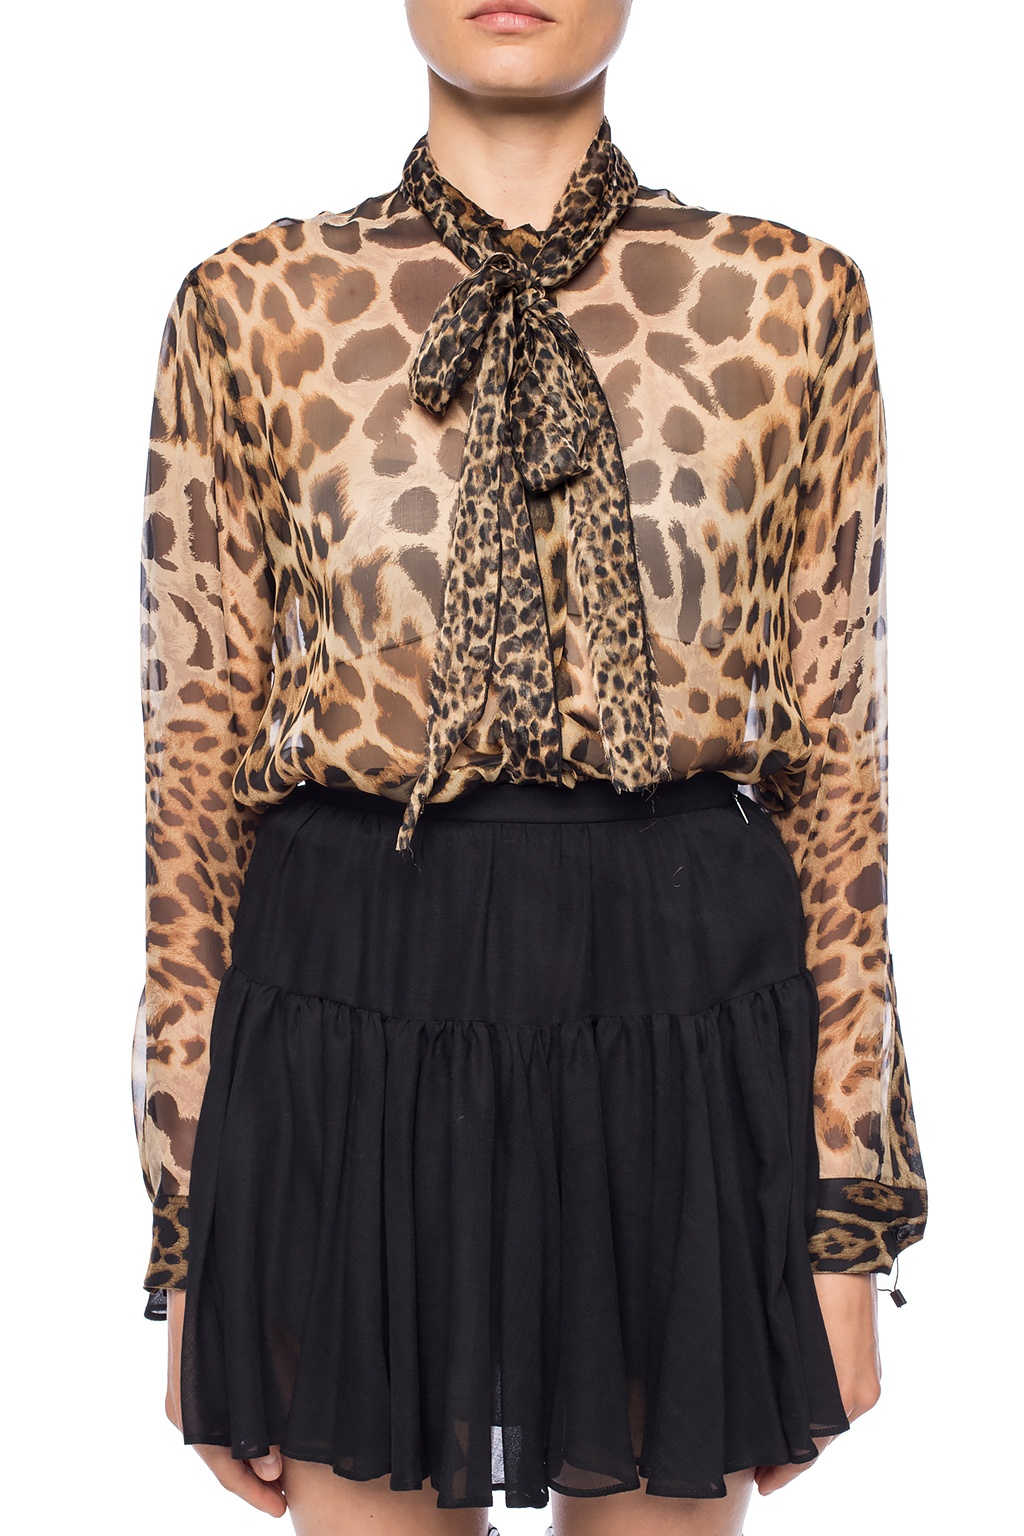 Saint Laurent Leopard print silk shirt